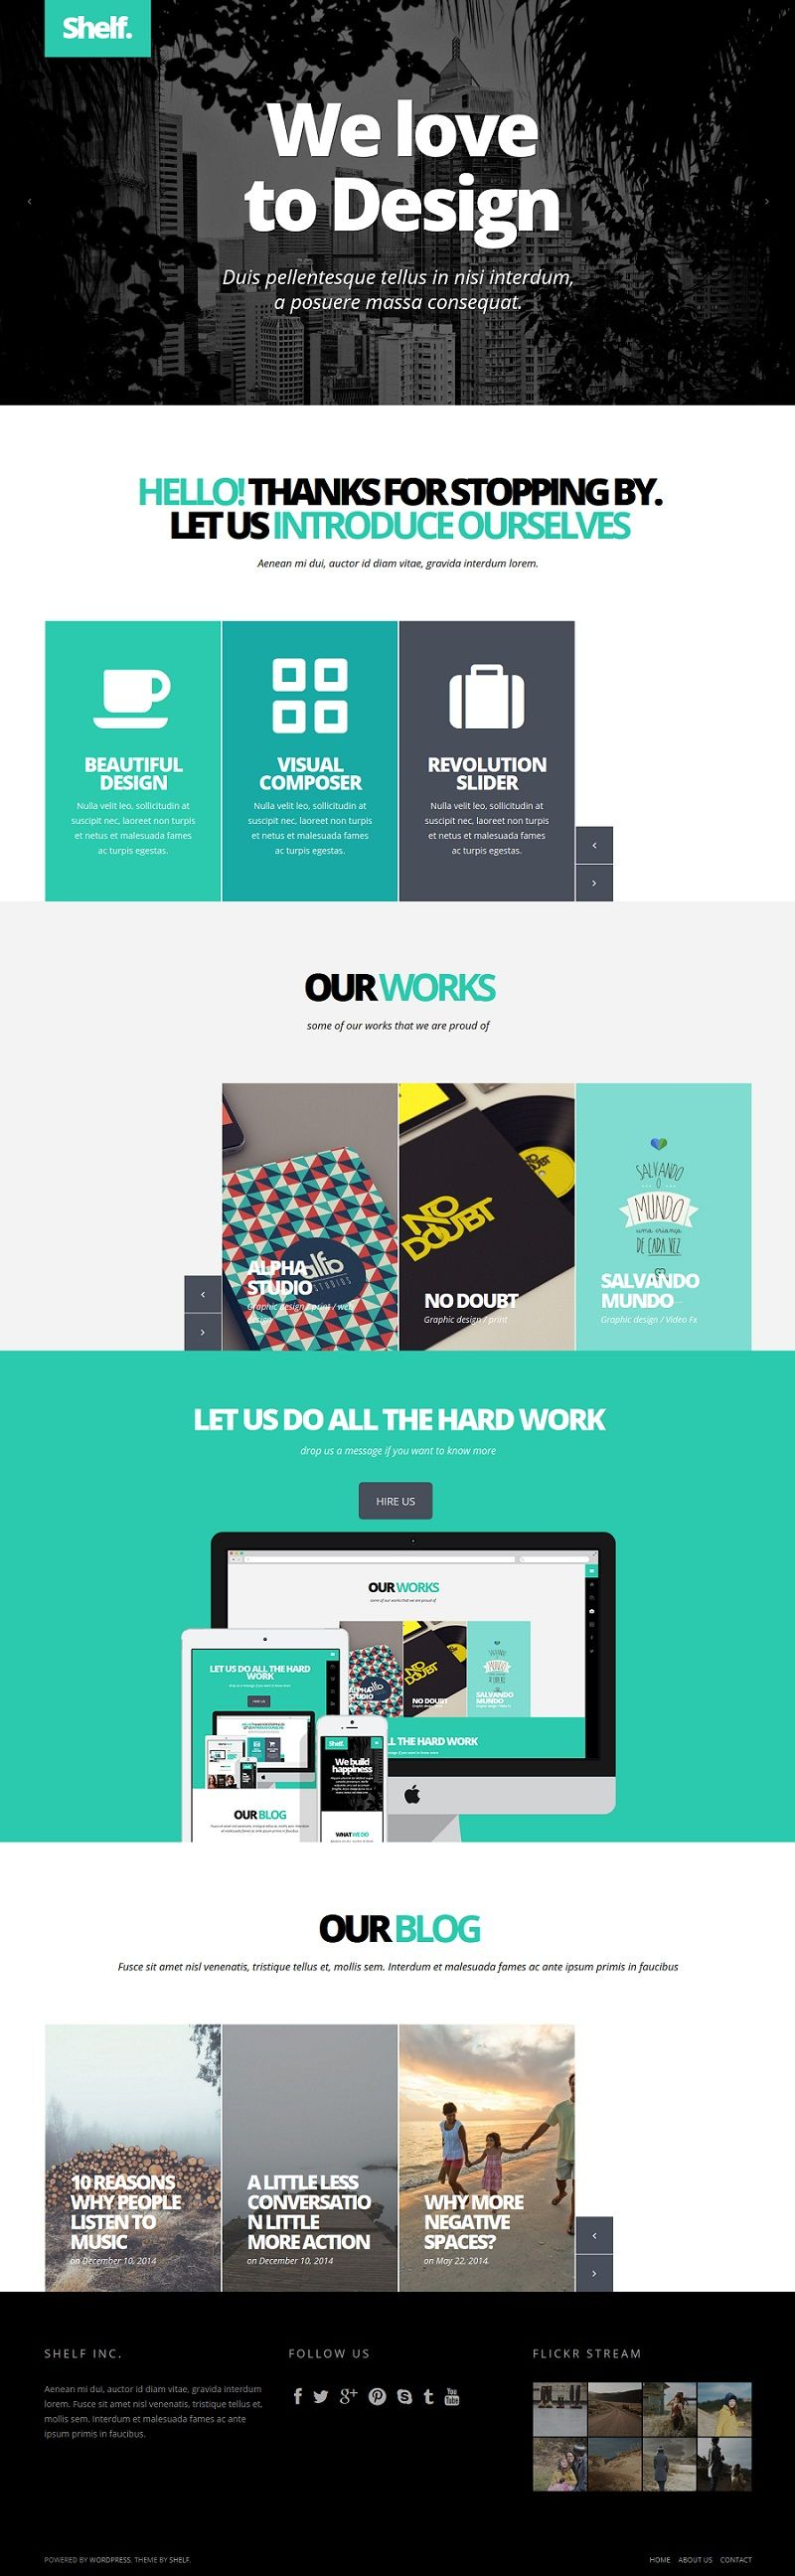 Web Design Inspiration - wordpress themes - simple - photo + design - home page